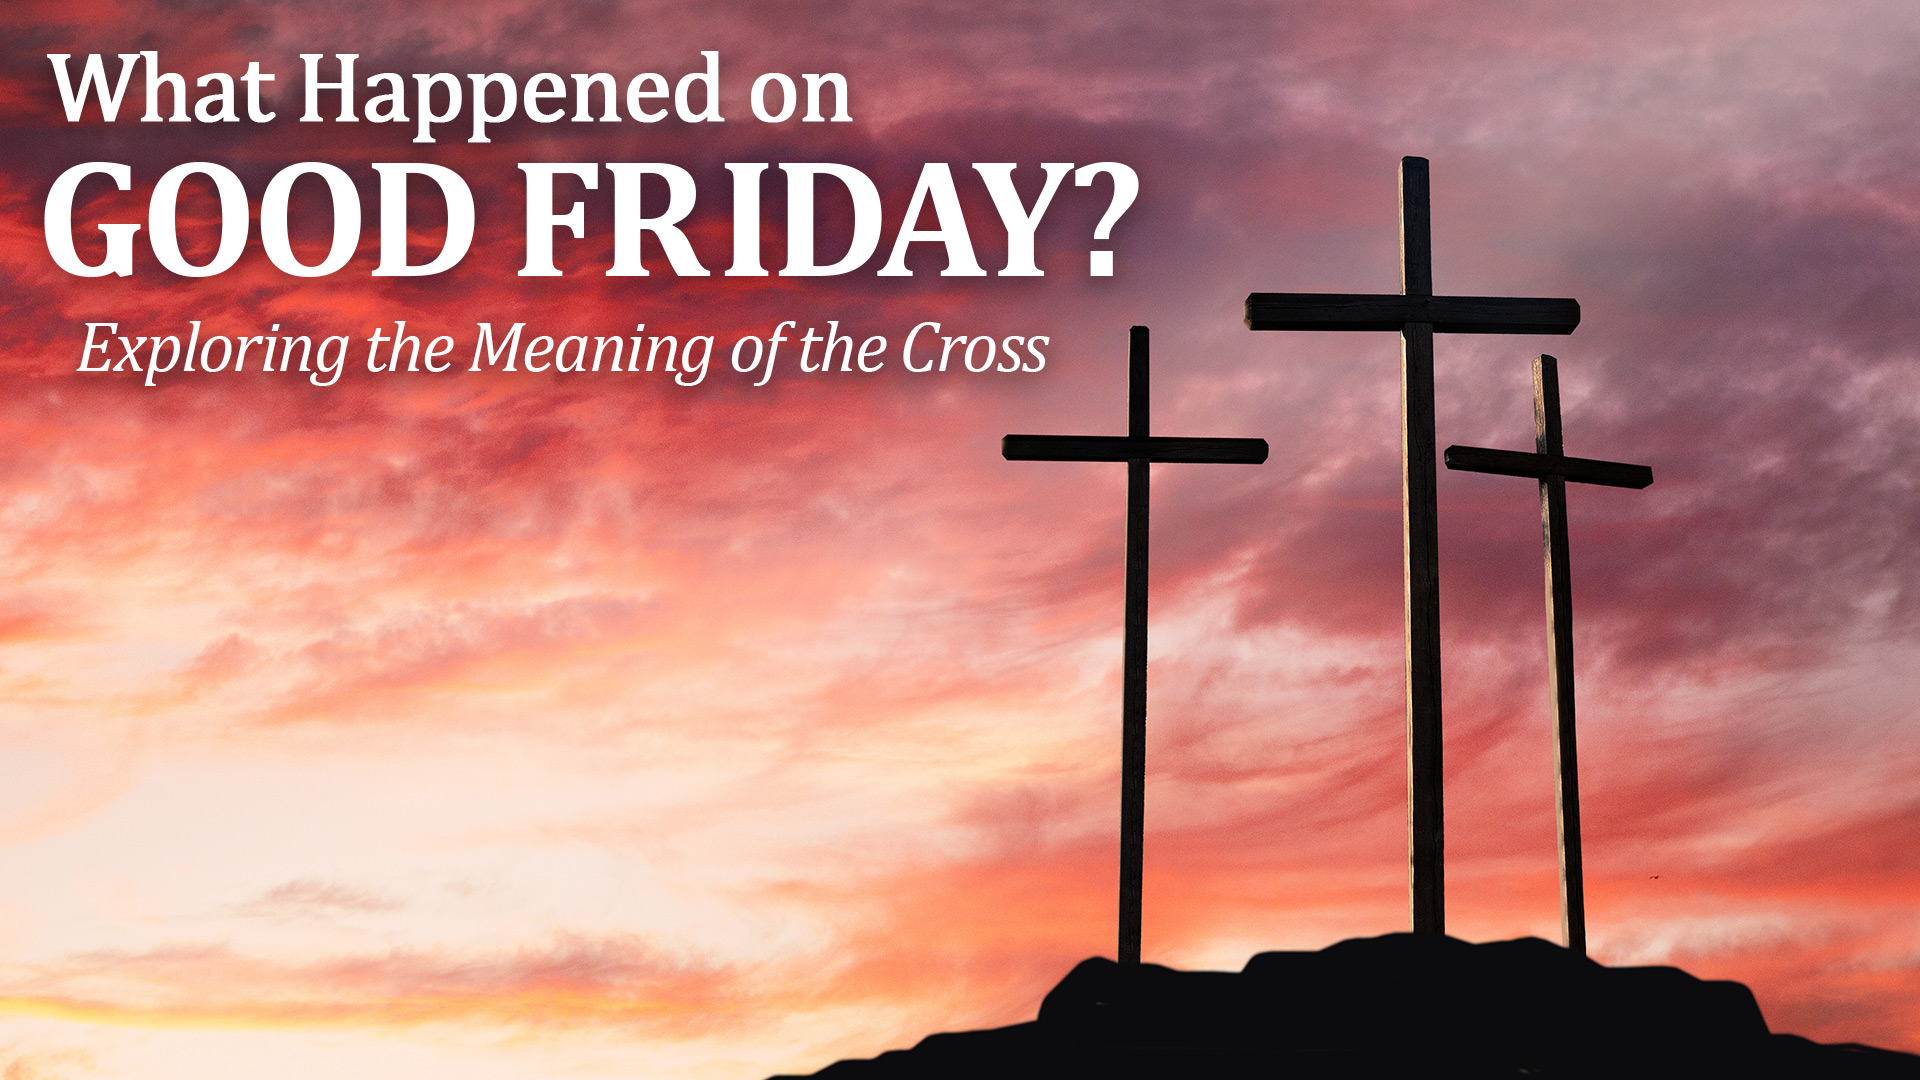 What Happened on Good Friday?